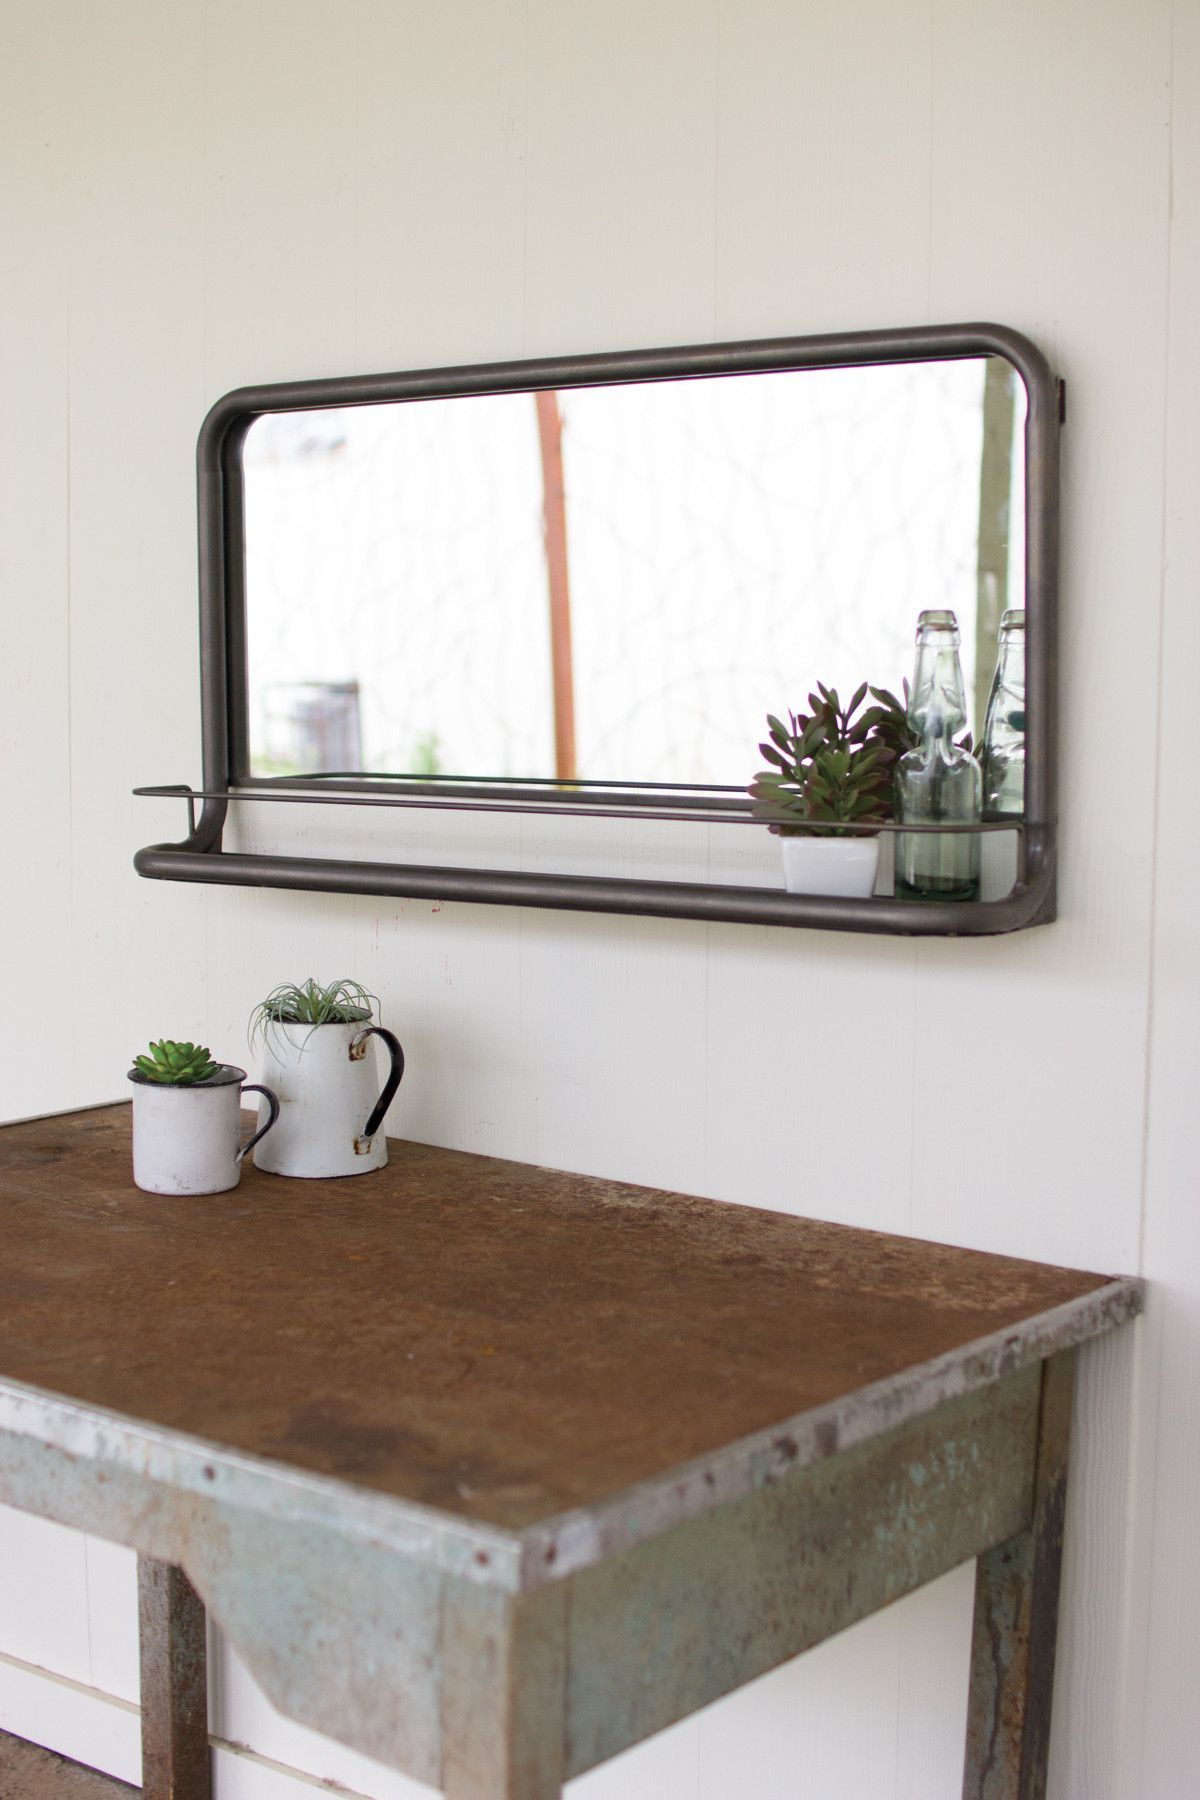 Miroir Sympa Salle De Bain ~ great design never goes out of style this mirror can attest to that